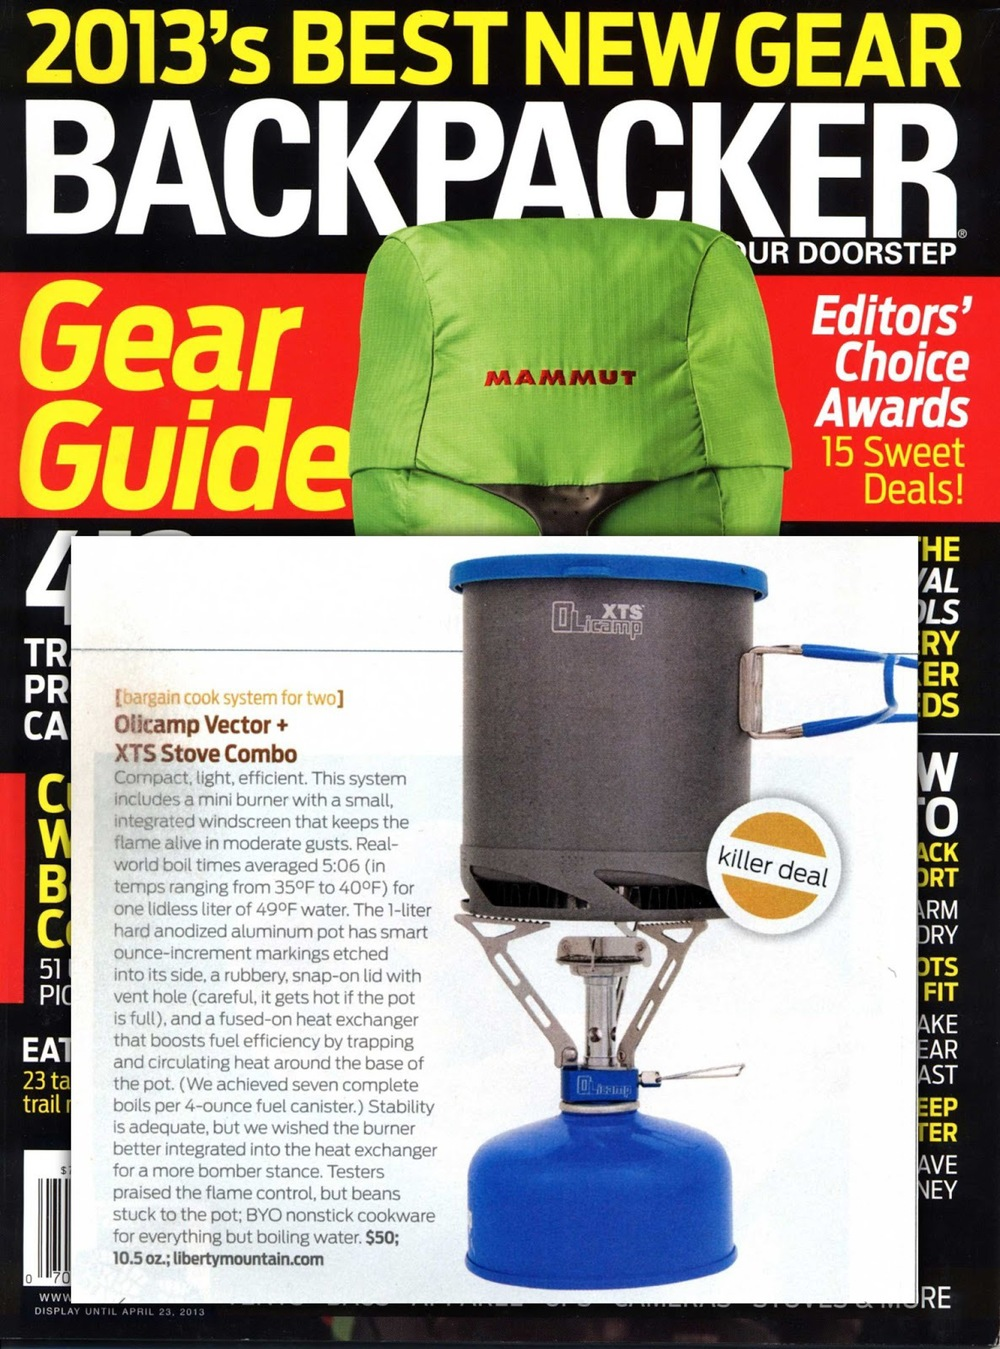 Vector Stove and XTS Pot featured in Backpacker Magazine's 2013 Gear Guide.